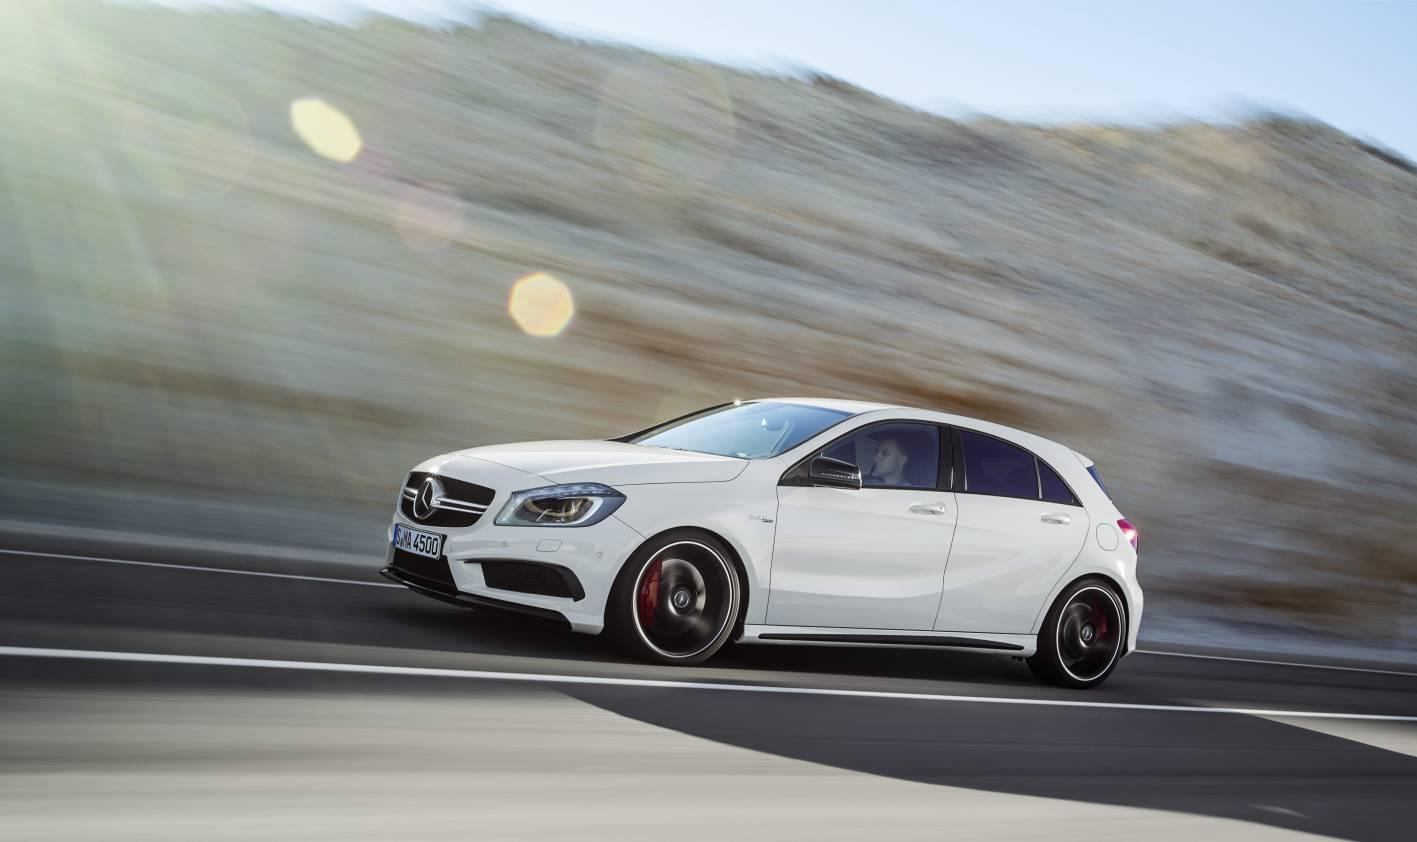 The A 45 AMG is AMG's first vehicle in the compact class